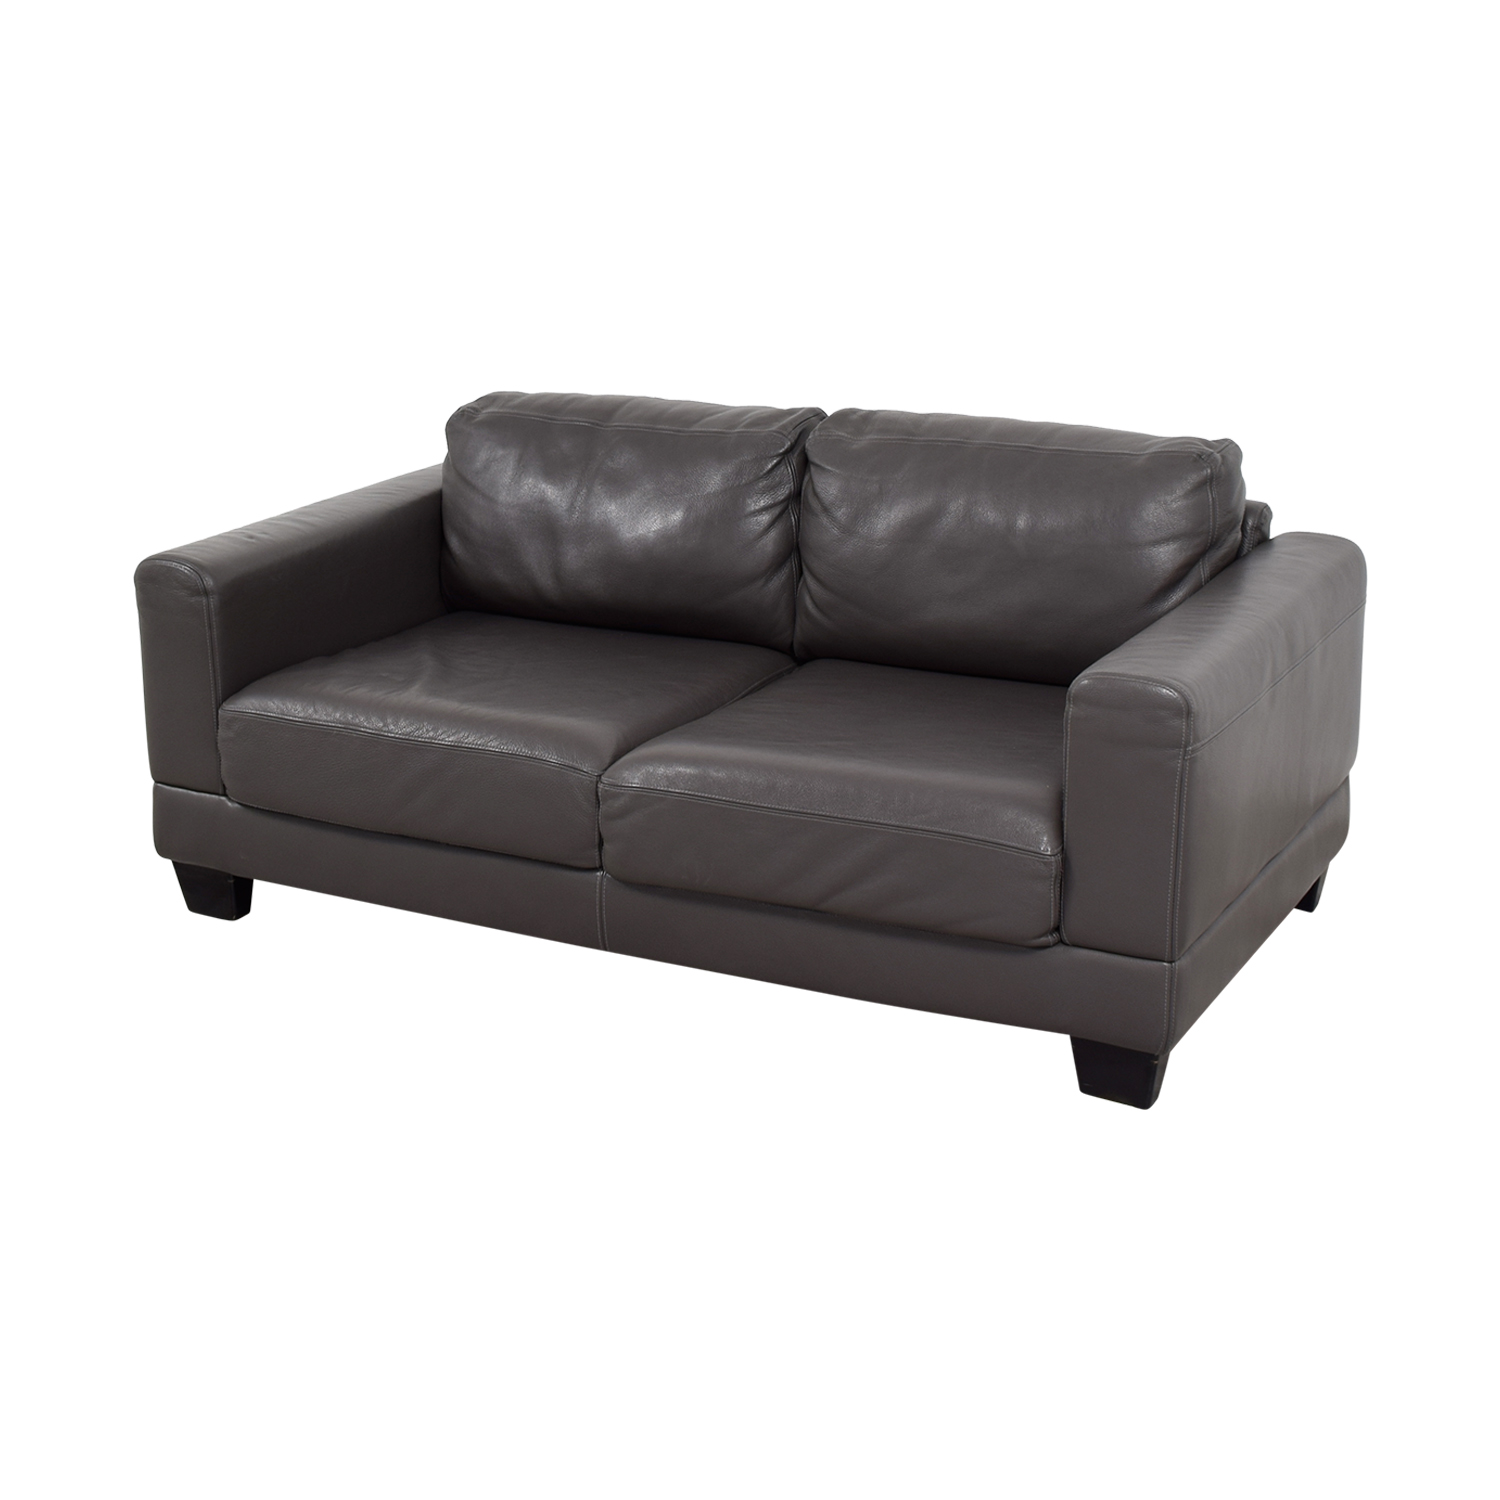 Gray Two-Cushion Leather Loveseat nj